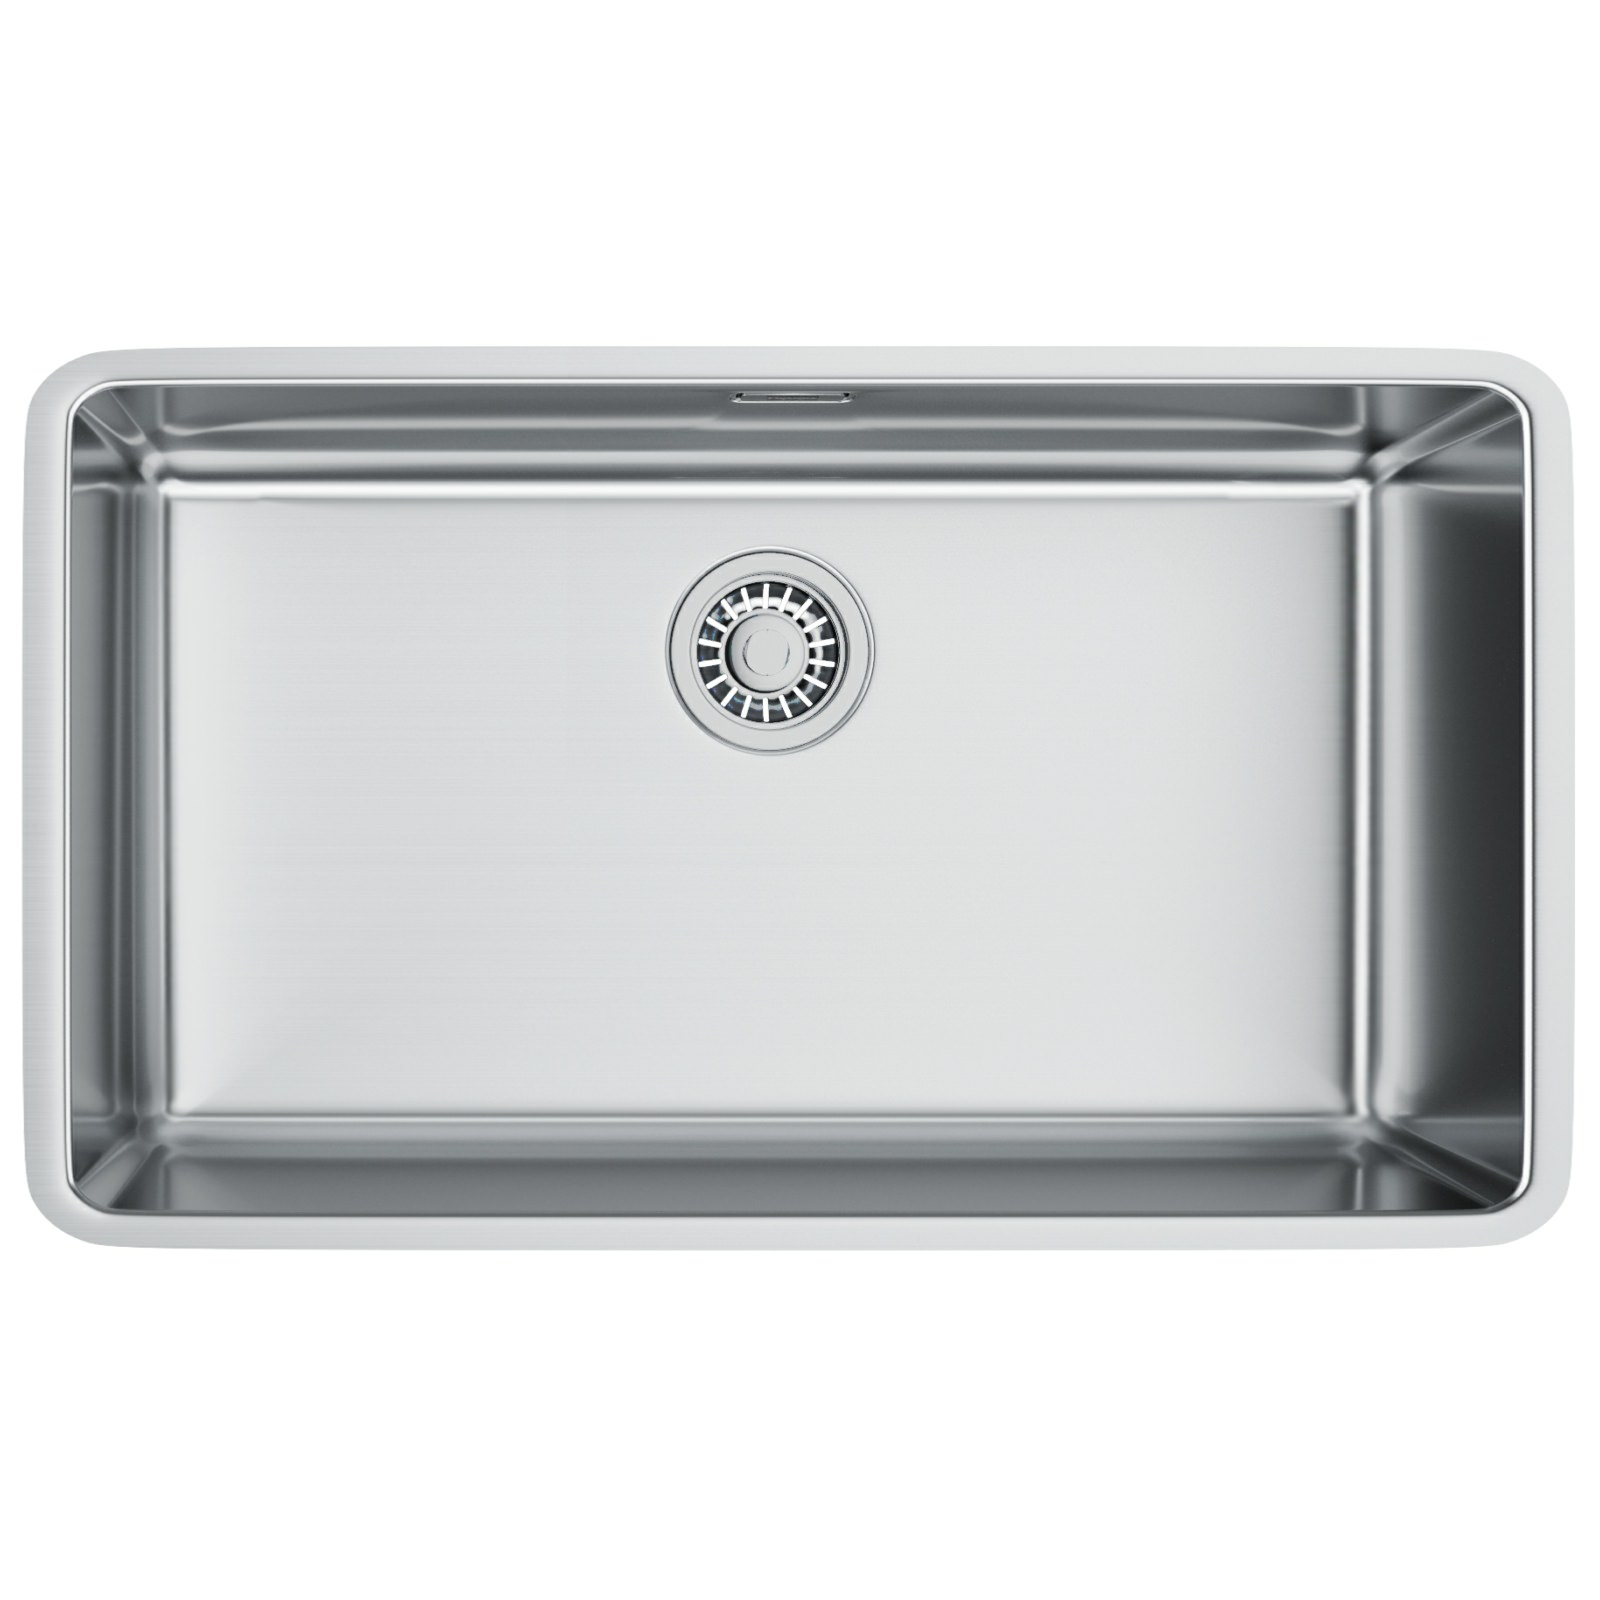 ... sink franke kubus kbx 110 70 stainless steel undermount kitchen sink